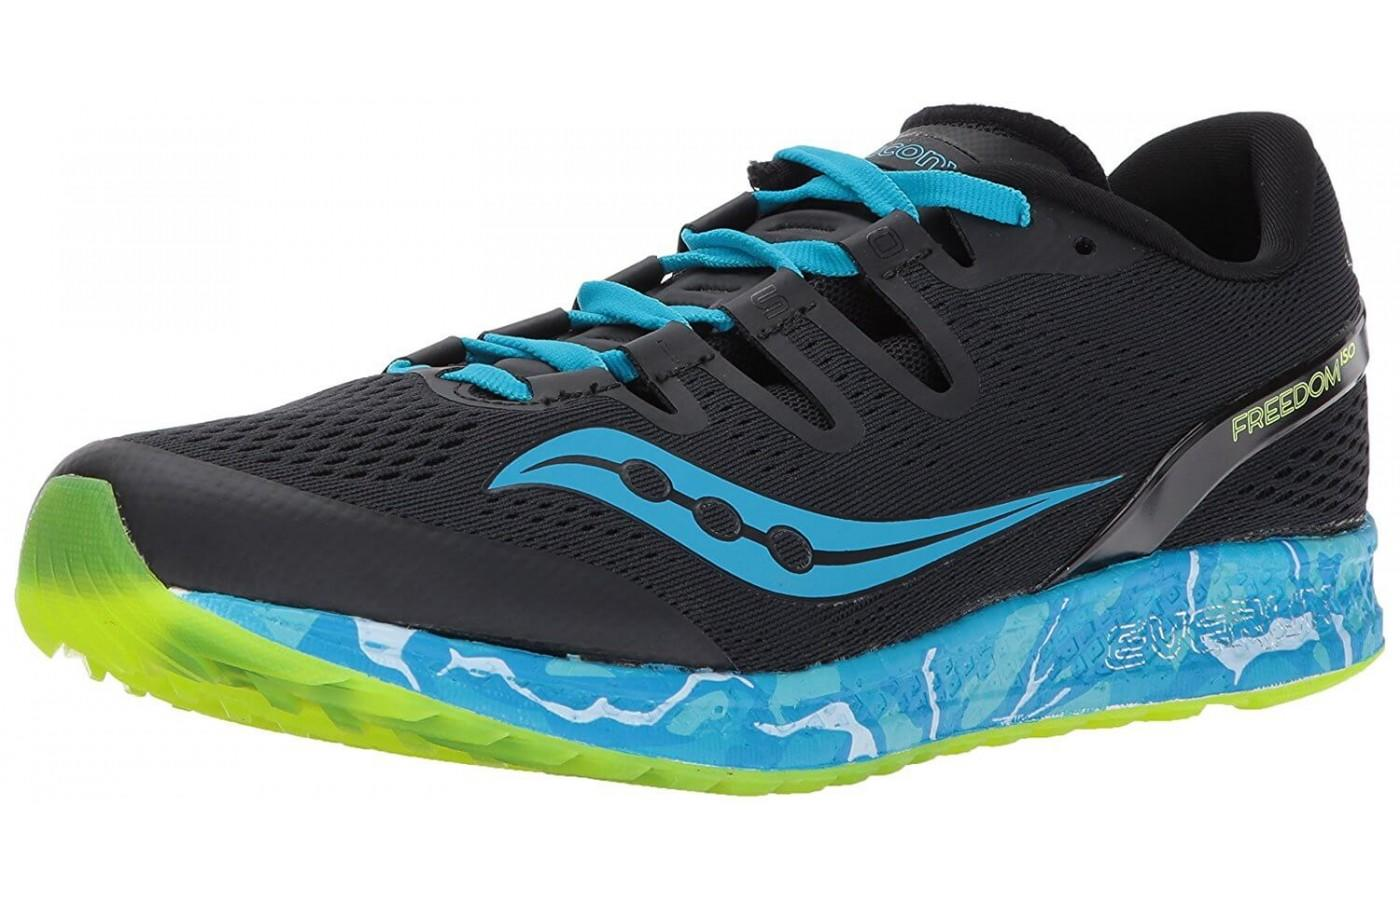 The Saucony Freedom ISO shown from the front/side.